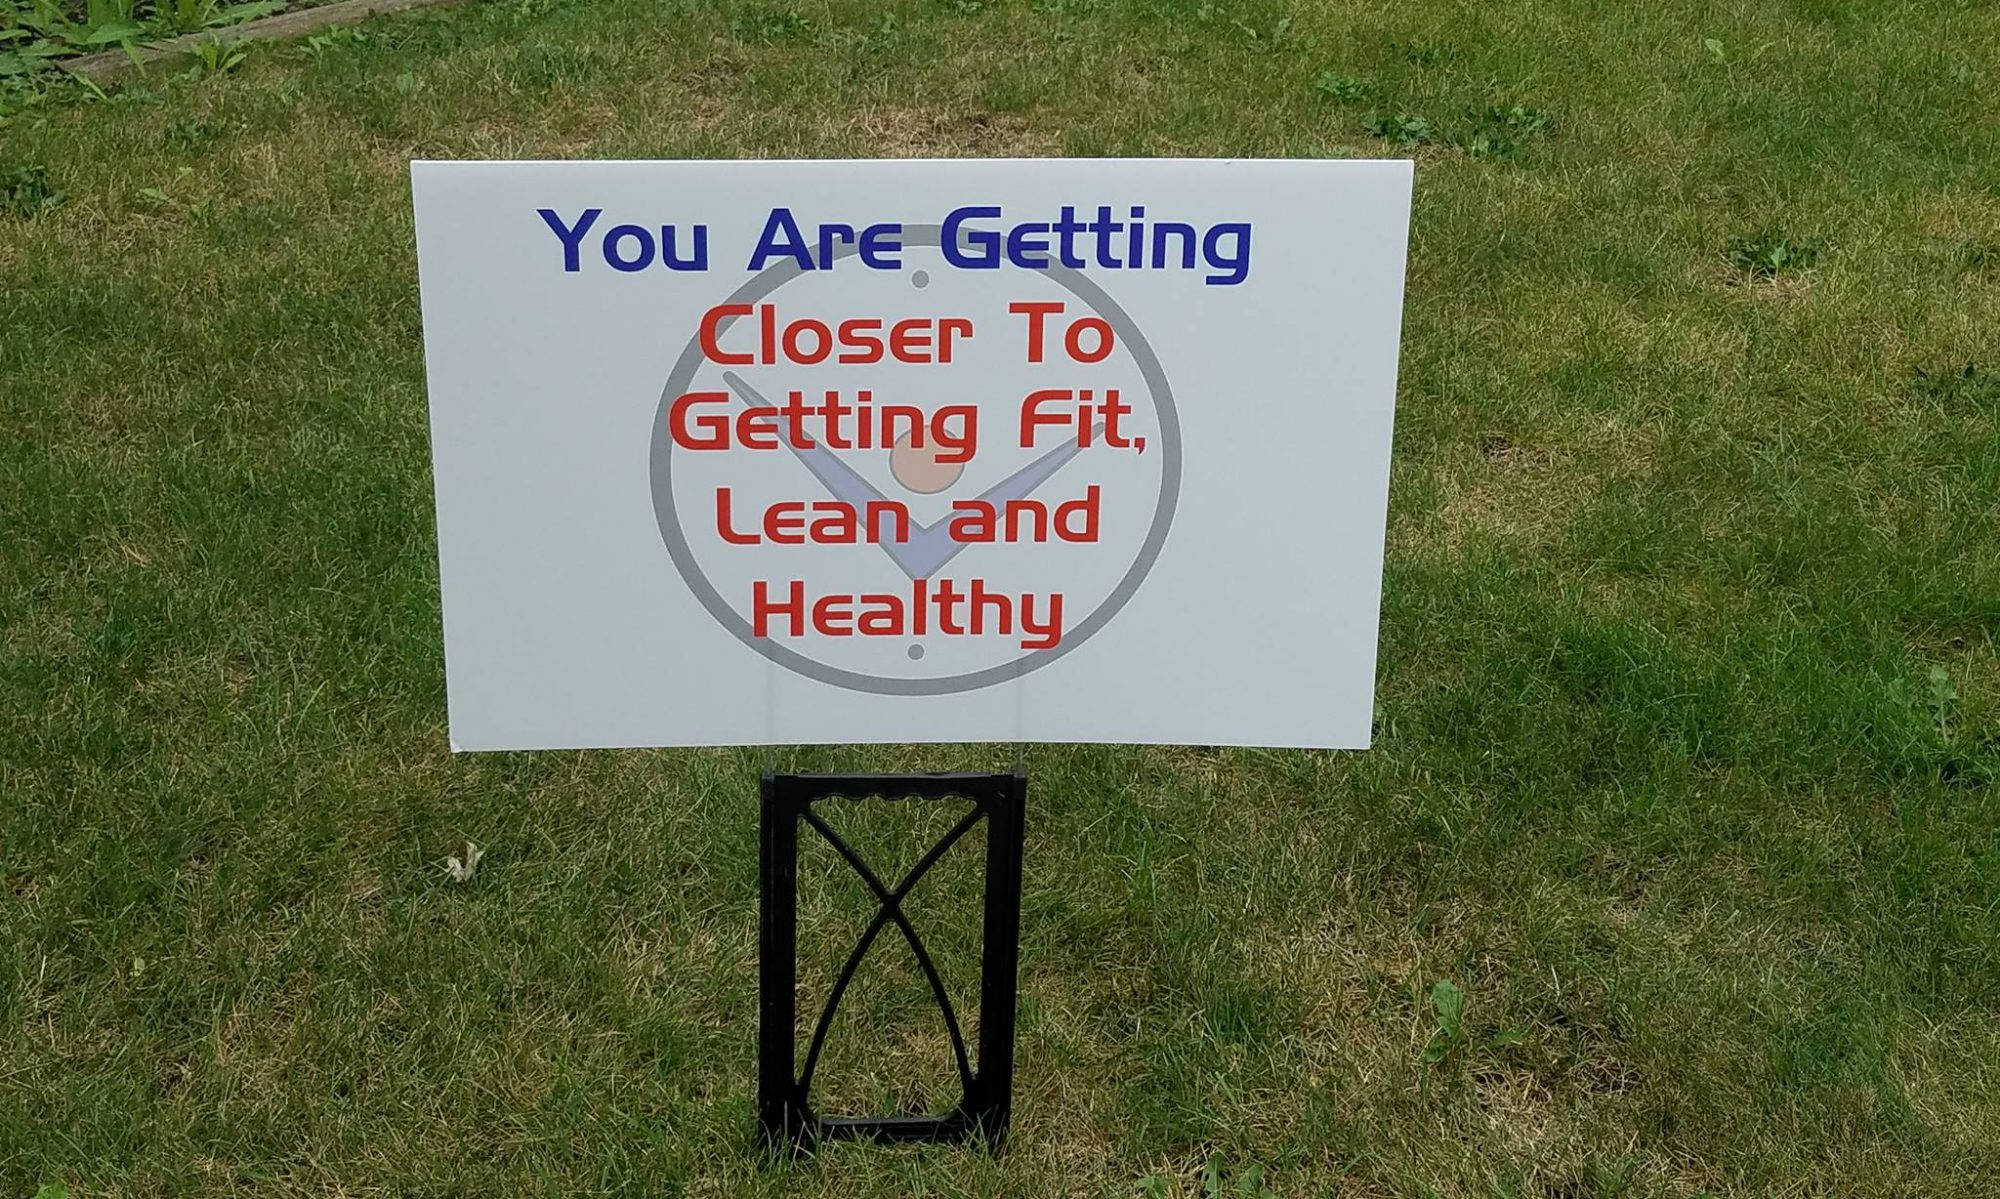 WE FIT U FITNESS SERVICES' WEBSITE IS UNDER CONSTRUCTION.